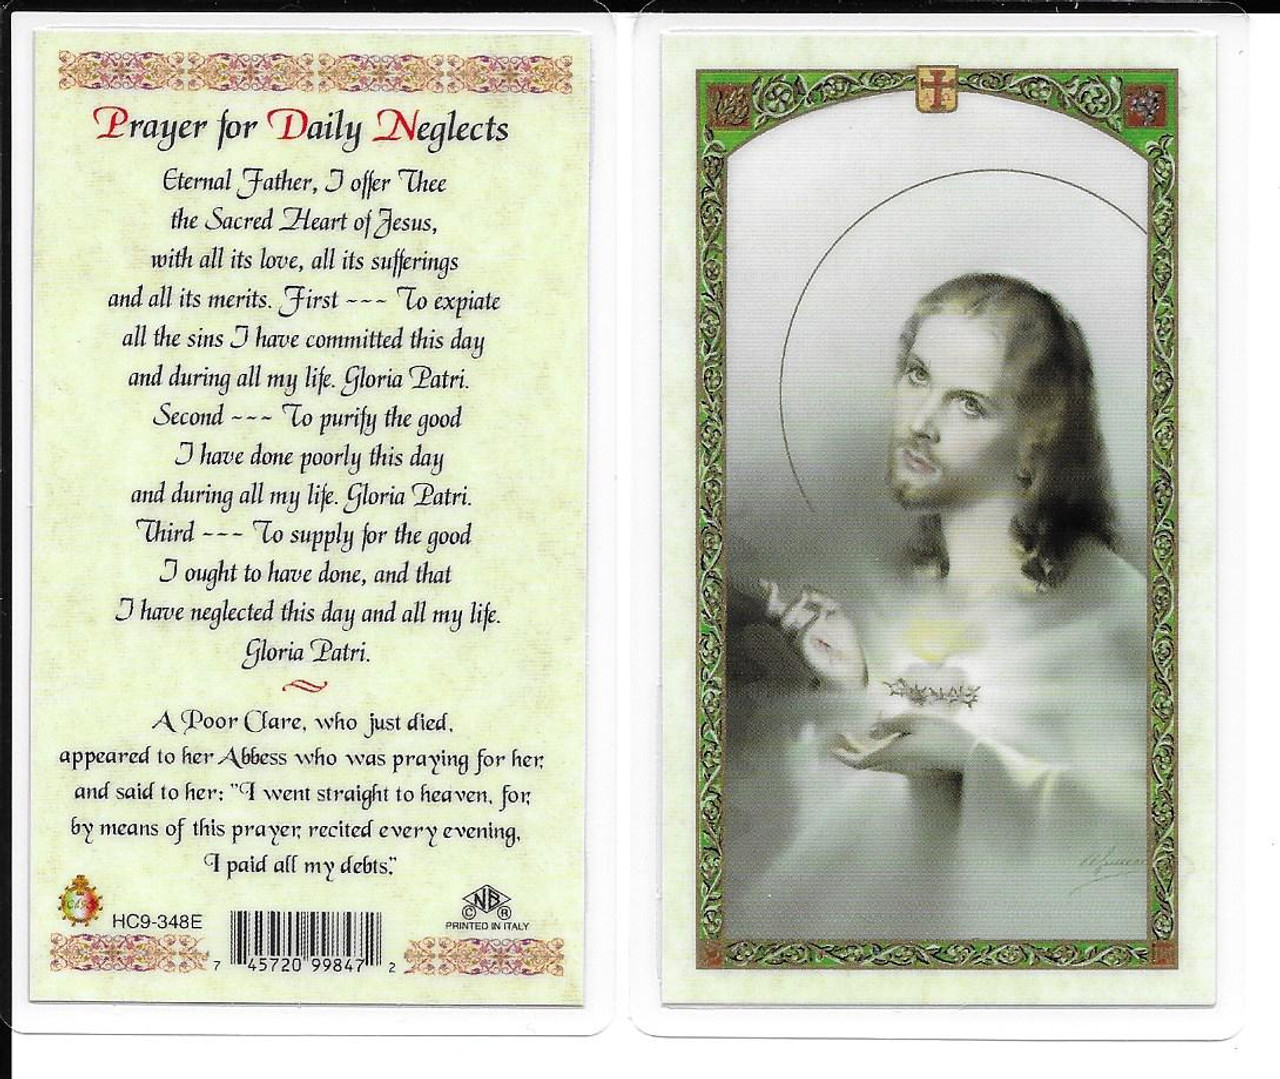 """Laminated Prayer Card """"Prayer for Daily Neglects""""."""